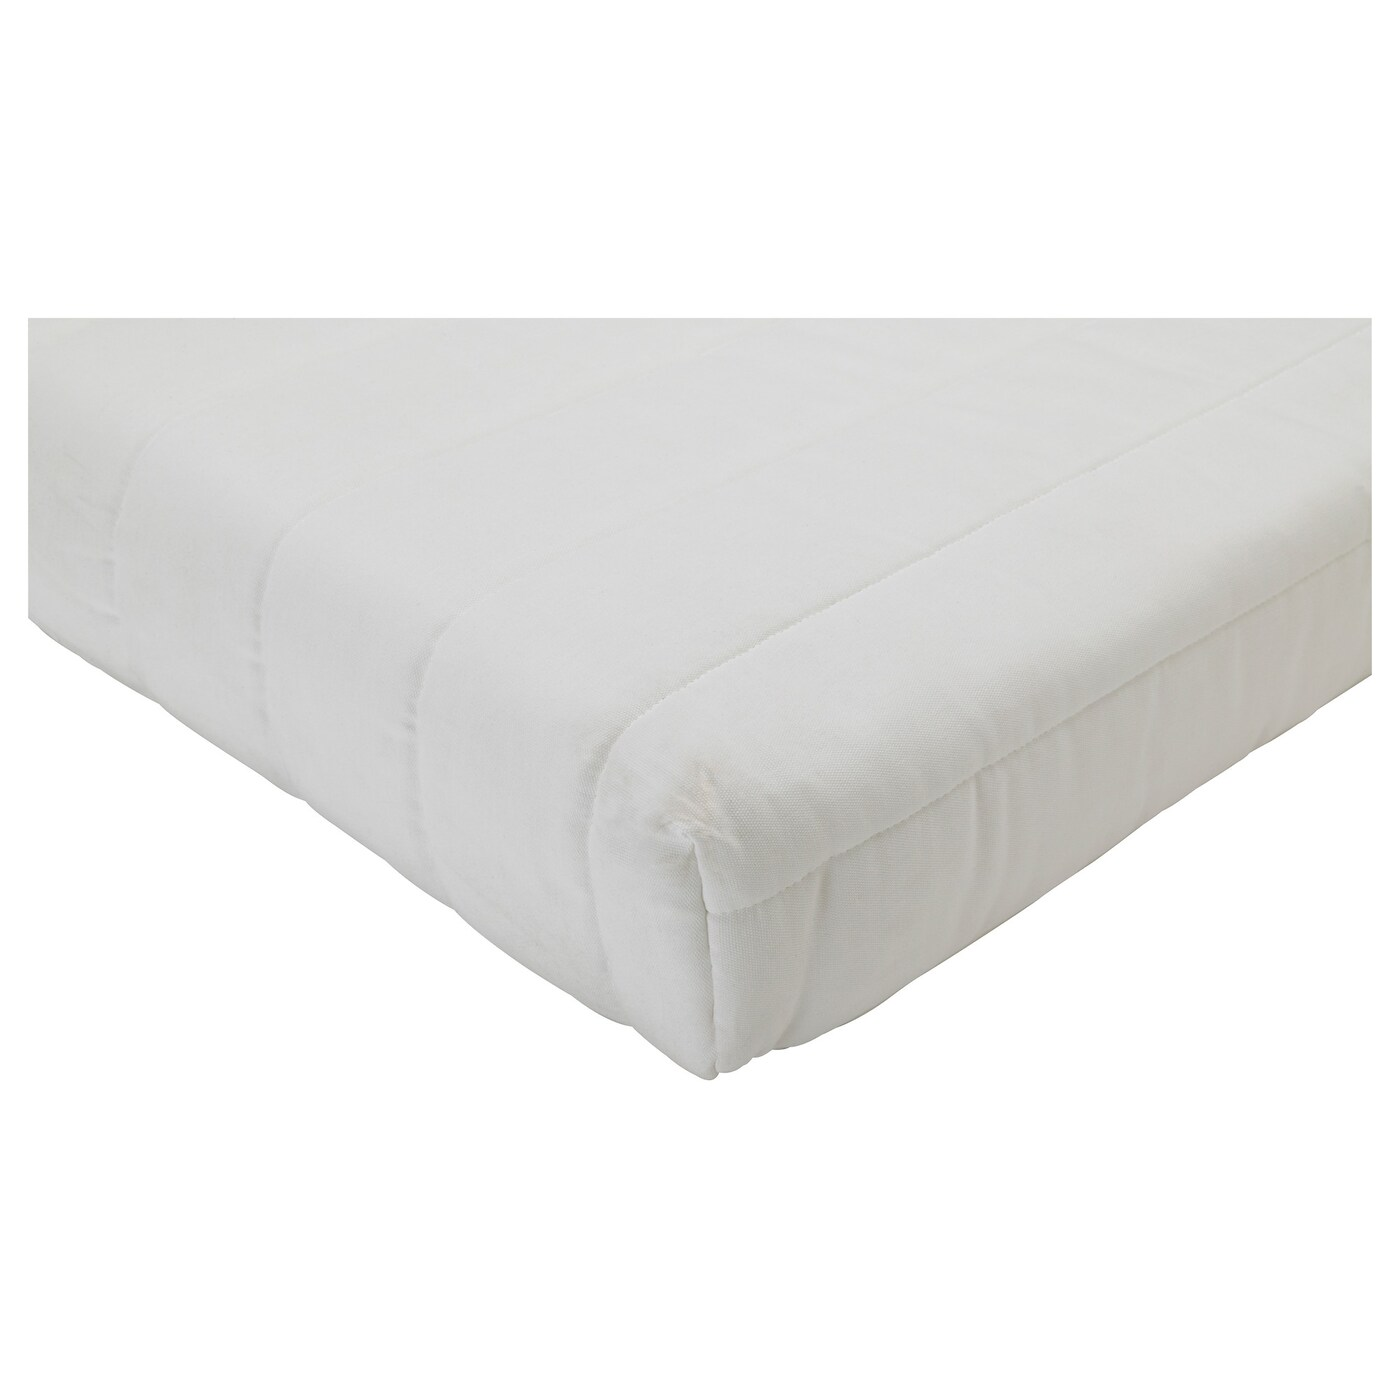 LYCKSELE HVET Mattress 140x188 Cm IKEA